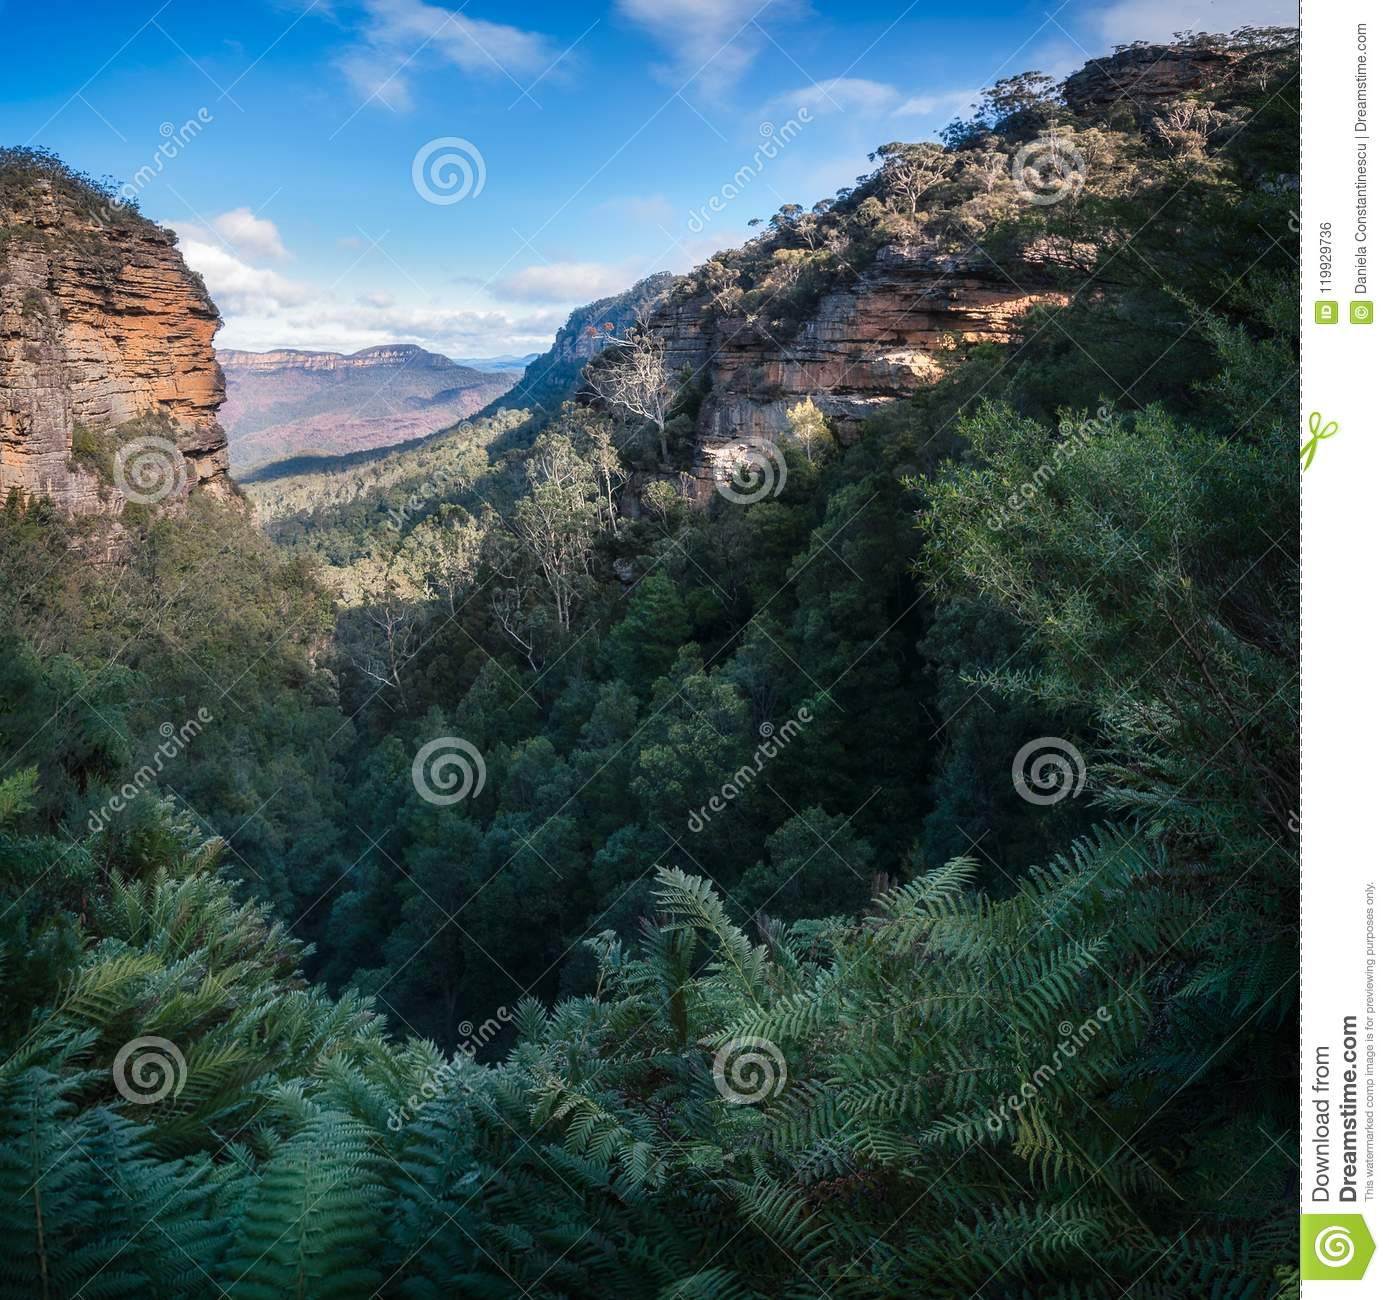 Download Blue Mountains Vista From Leura Cascades Walking Track Stock Photo - Image of bush, country: 119929736